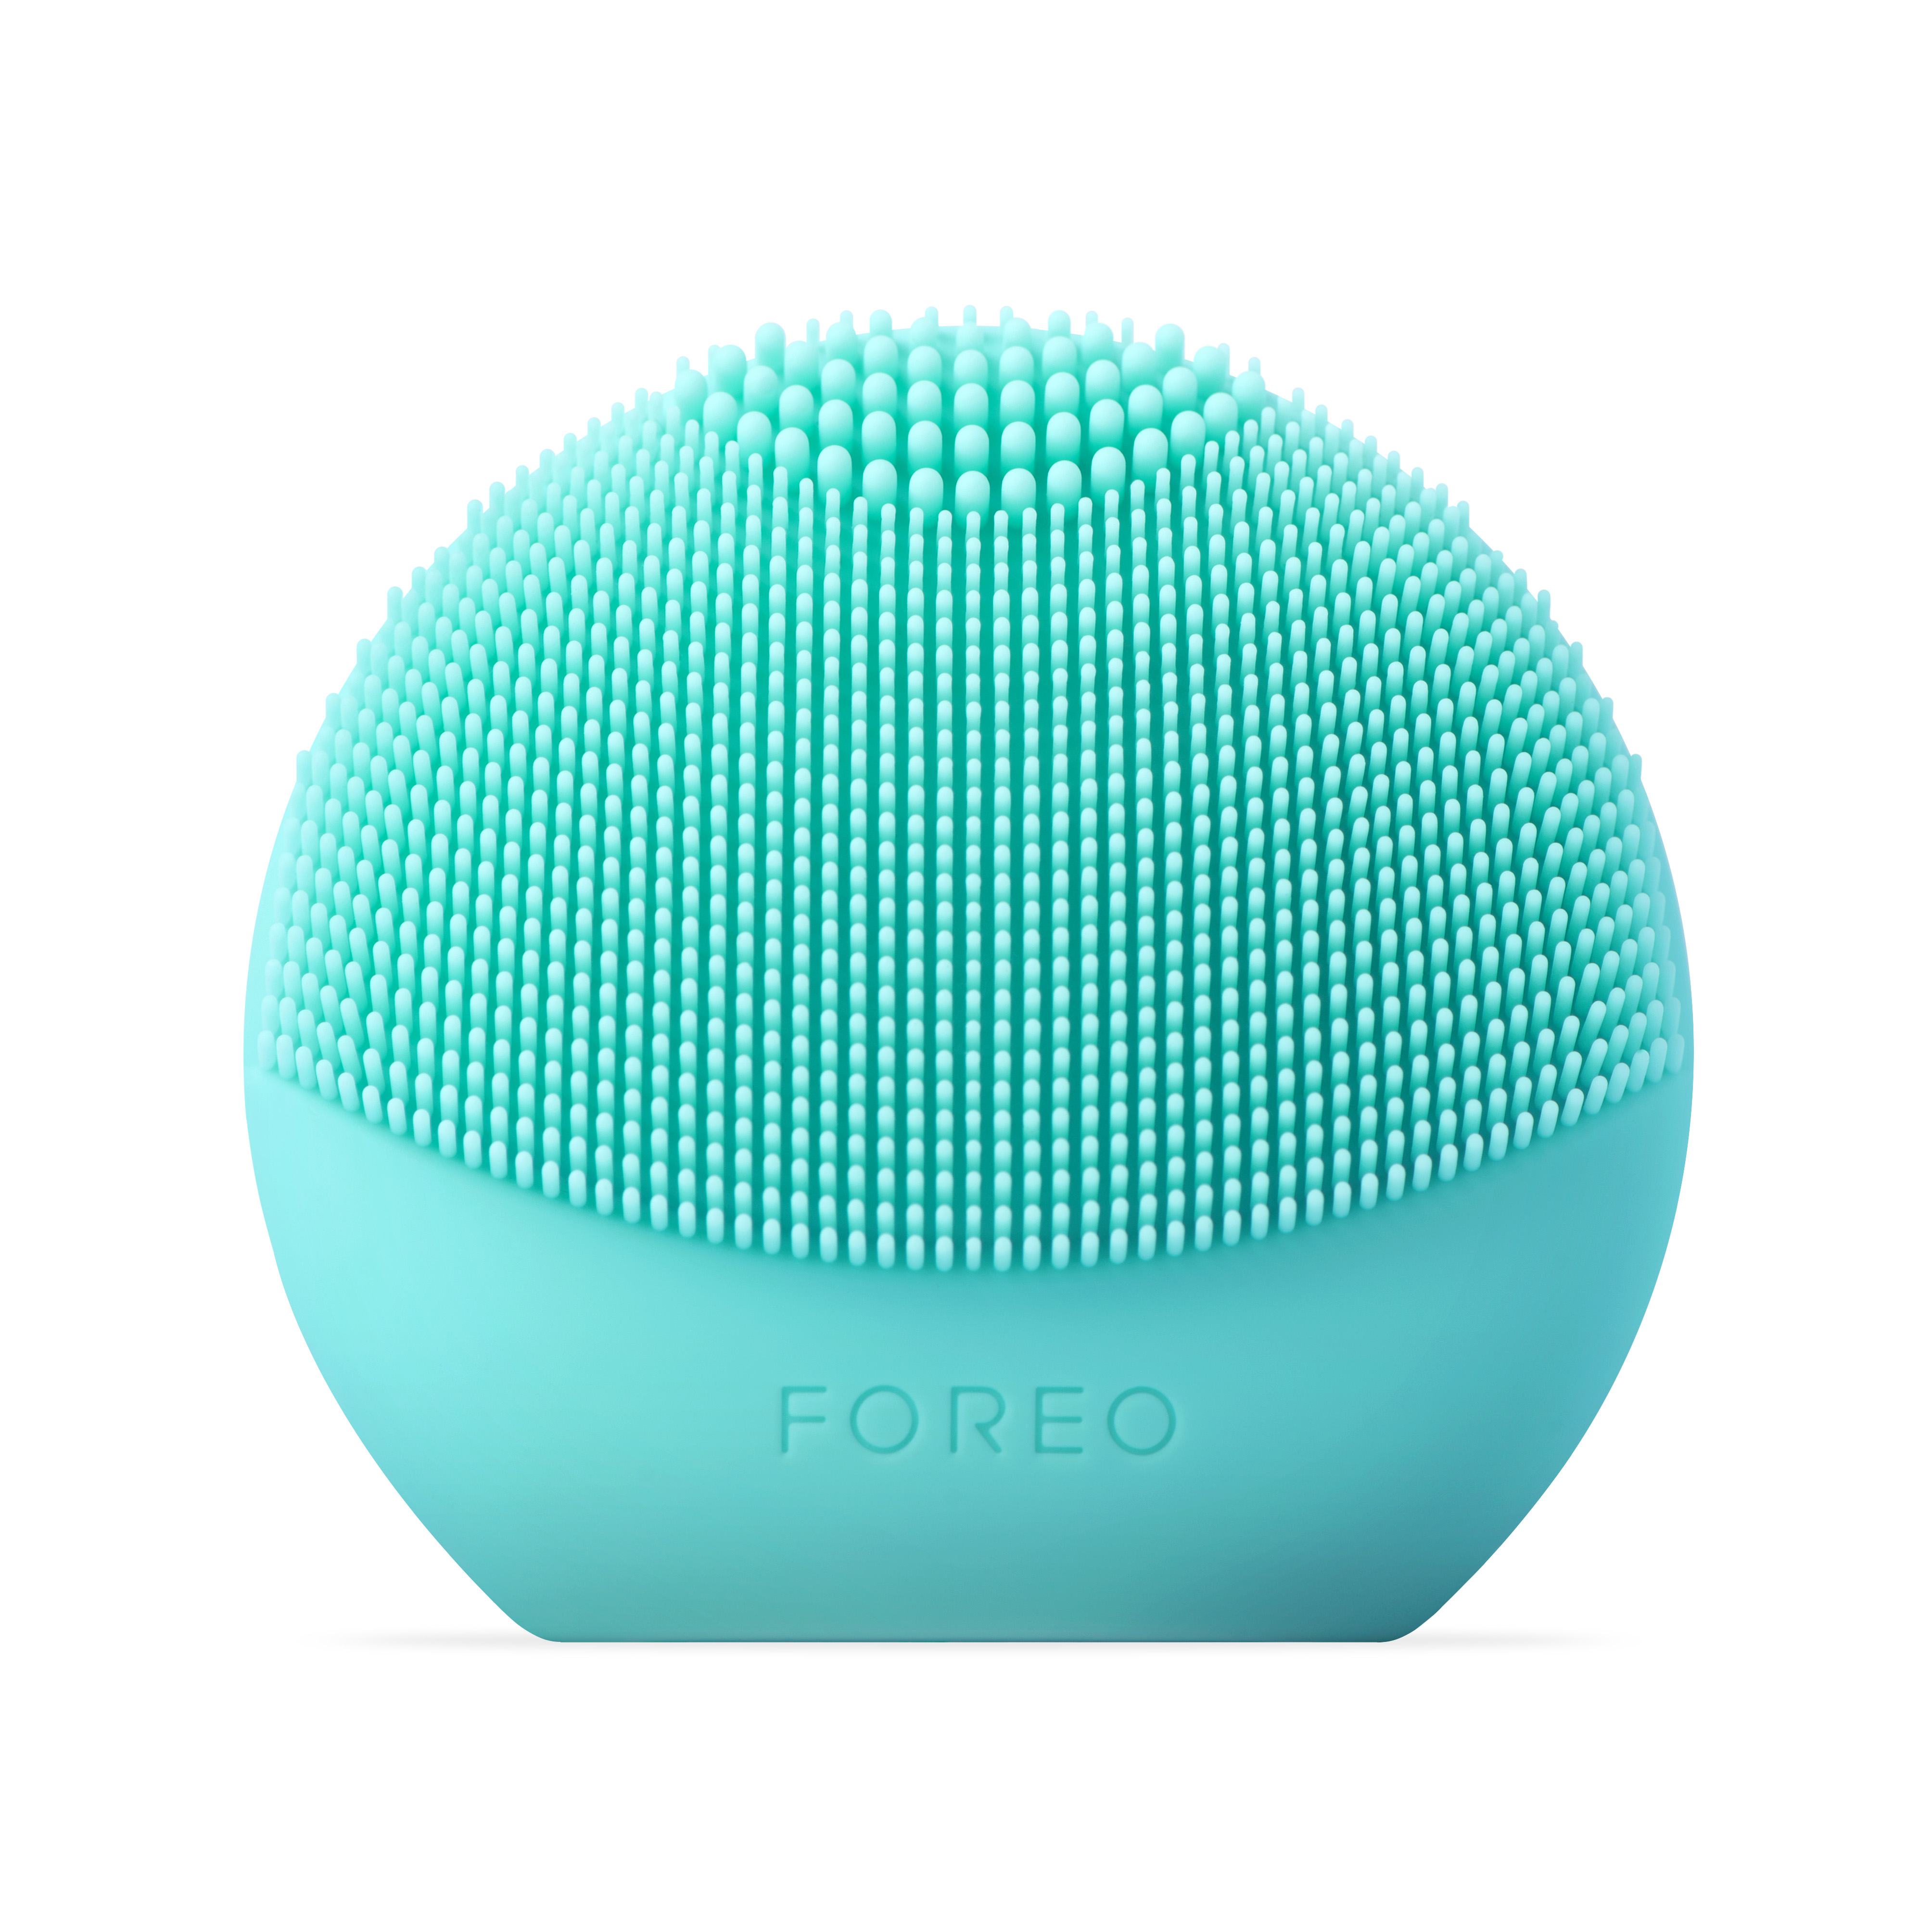 Luna Play Smart 2. FOREO LUNA play smart 2 - Mint for You